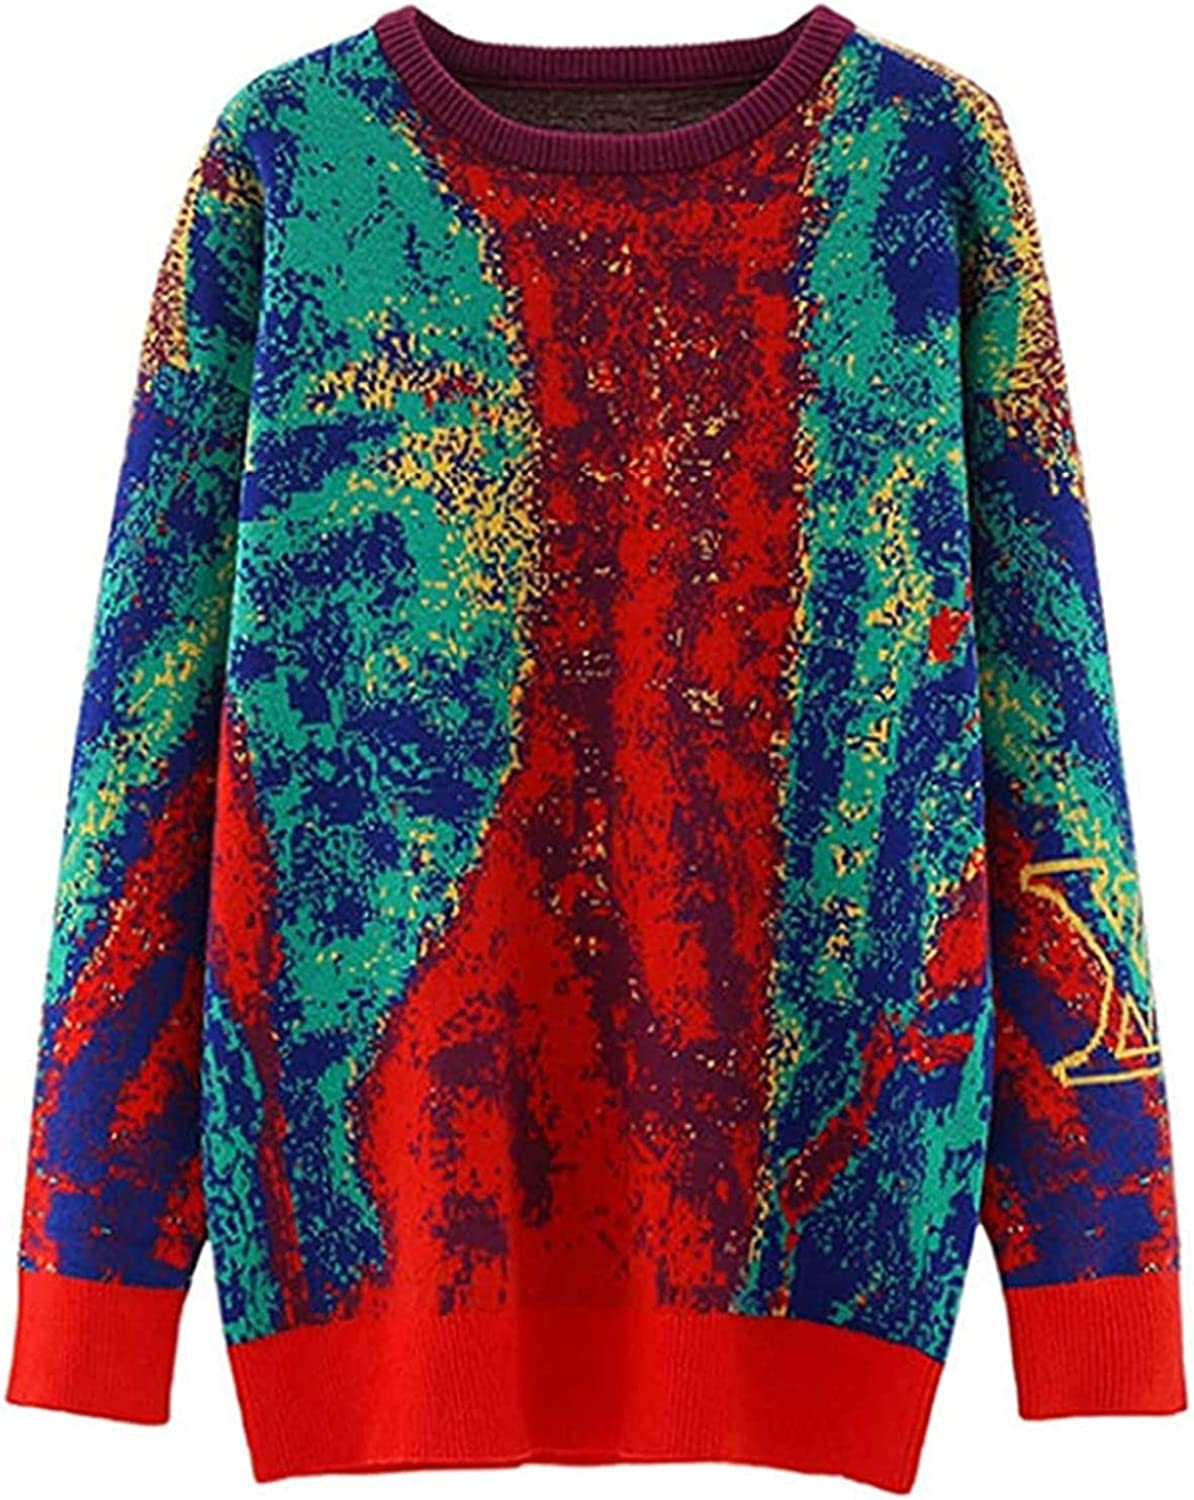 Nanoki Printed Colorful Knitted Women Same day shipping Max 81% OFF Streetwear Sweater Outwear